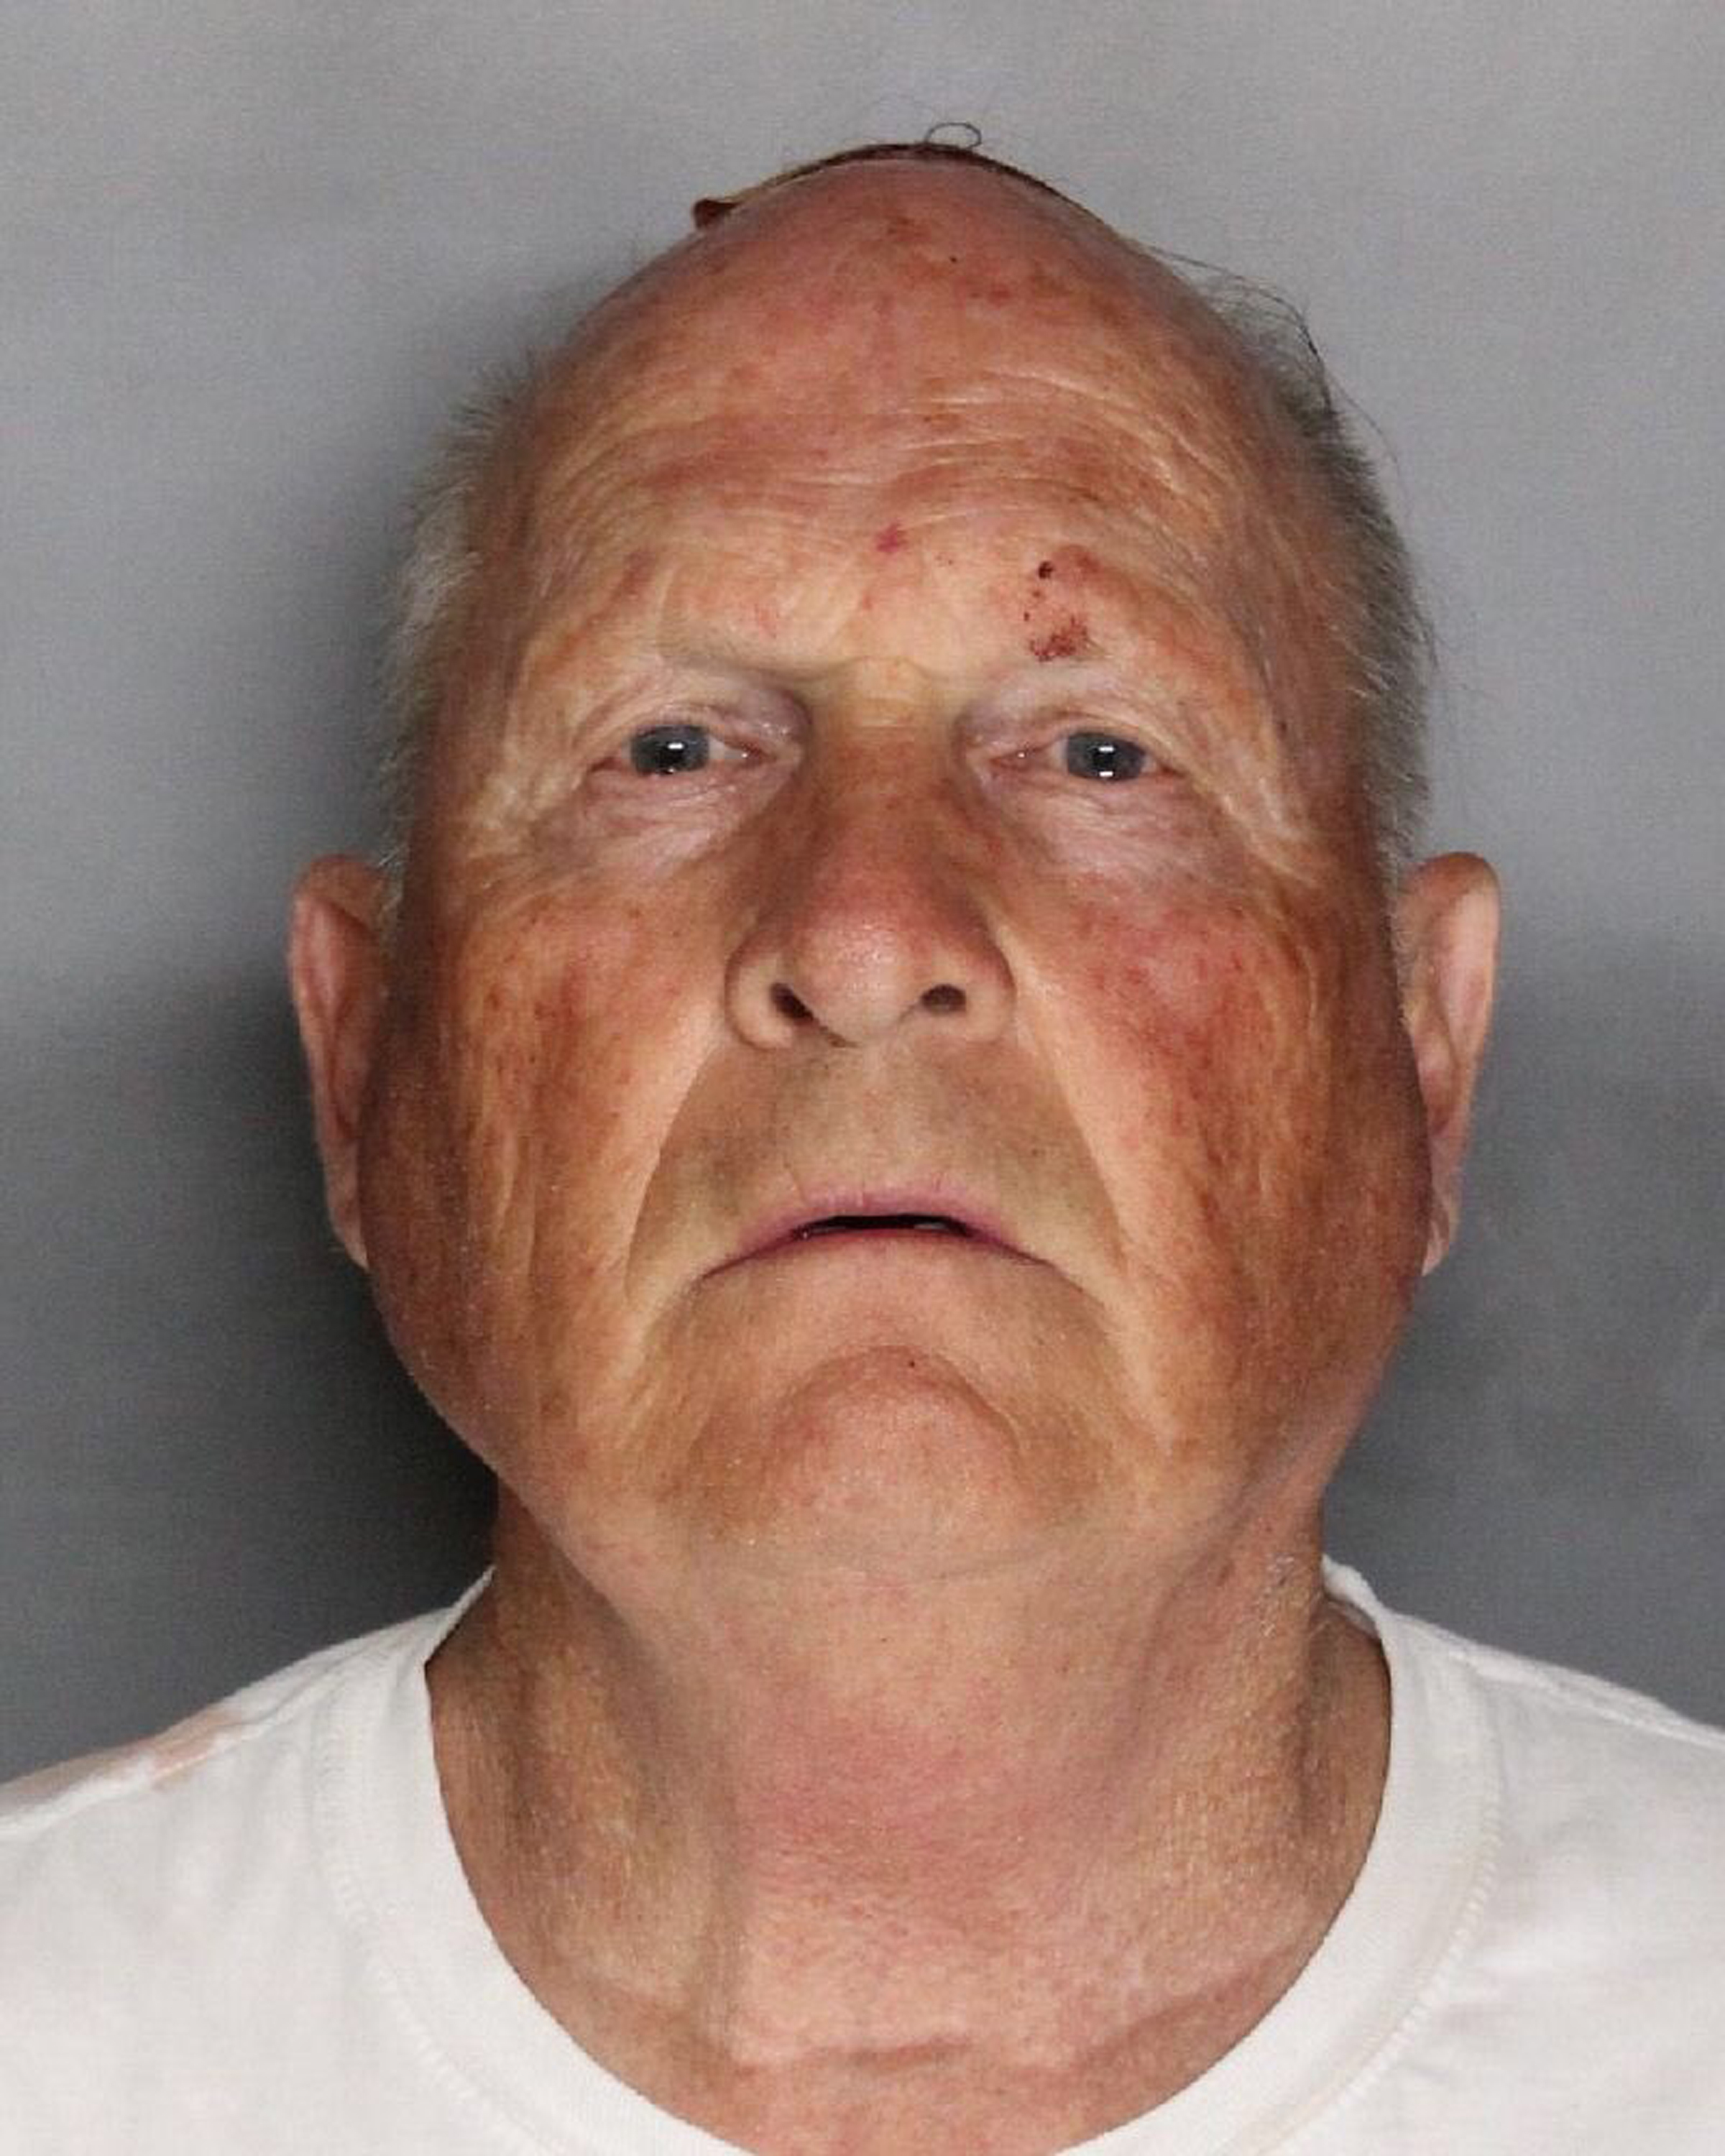 This undated law enforcement booking photo provided by the Sacramento County, Calif., Sheriff's Office shows Joseph James DeAngelo. California authorities said Wednesday, April 25, 2018 that DeAngelo is the man they suspect of being a serial killer tied to dozens of slayings and sexual assaults in the 1970s and '80s, and has been charged with murder. (Sacramento County Sheriff's Office via AP)